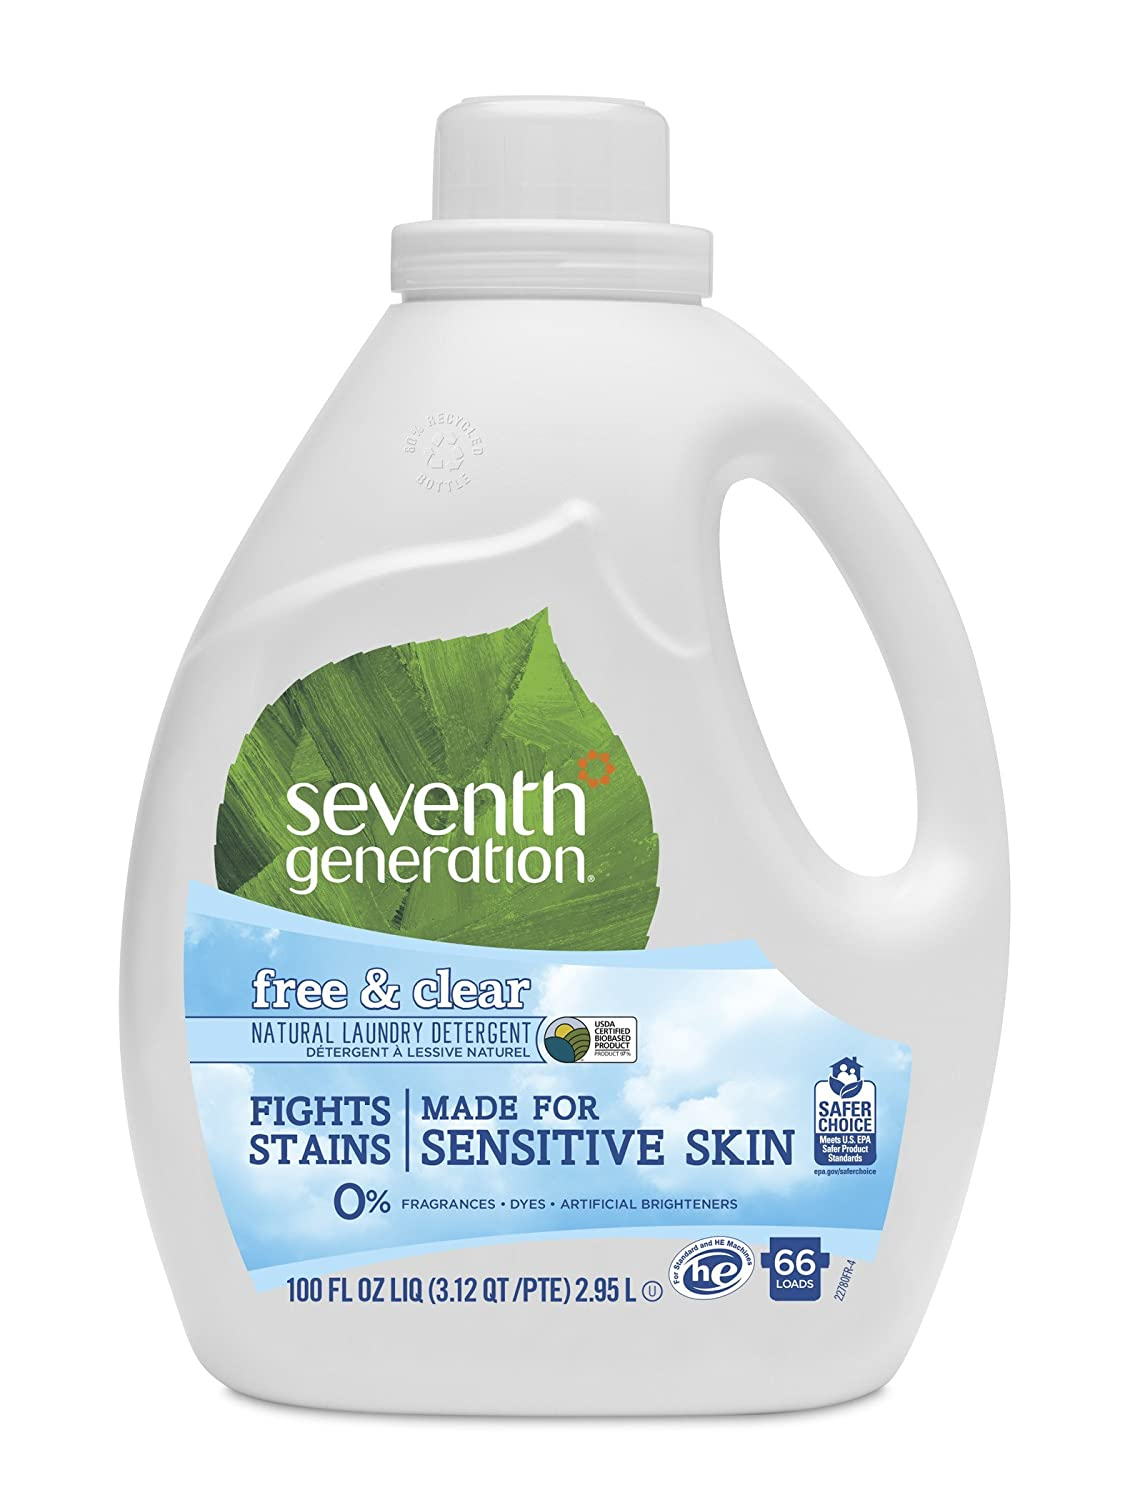 Seventh Generation Liquid Laundry Detergent, Free & Clear, 66 Loads, 100 Fl  Oz, Pack of 1